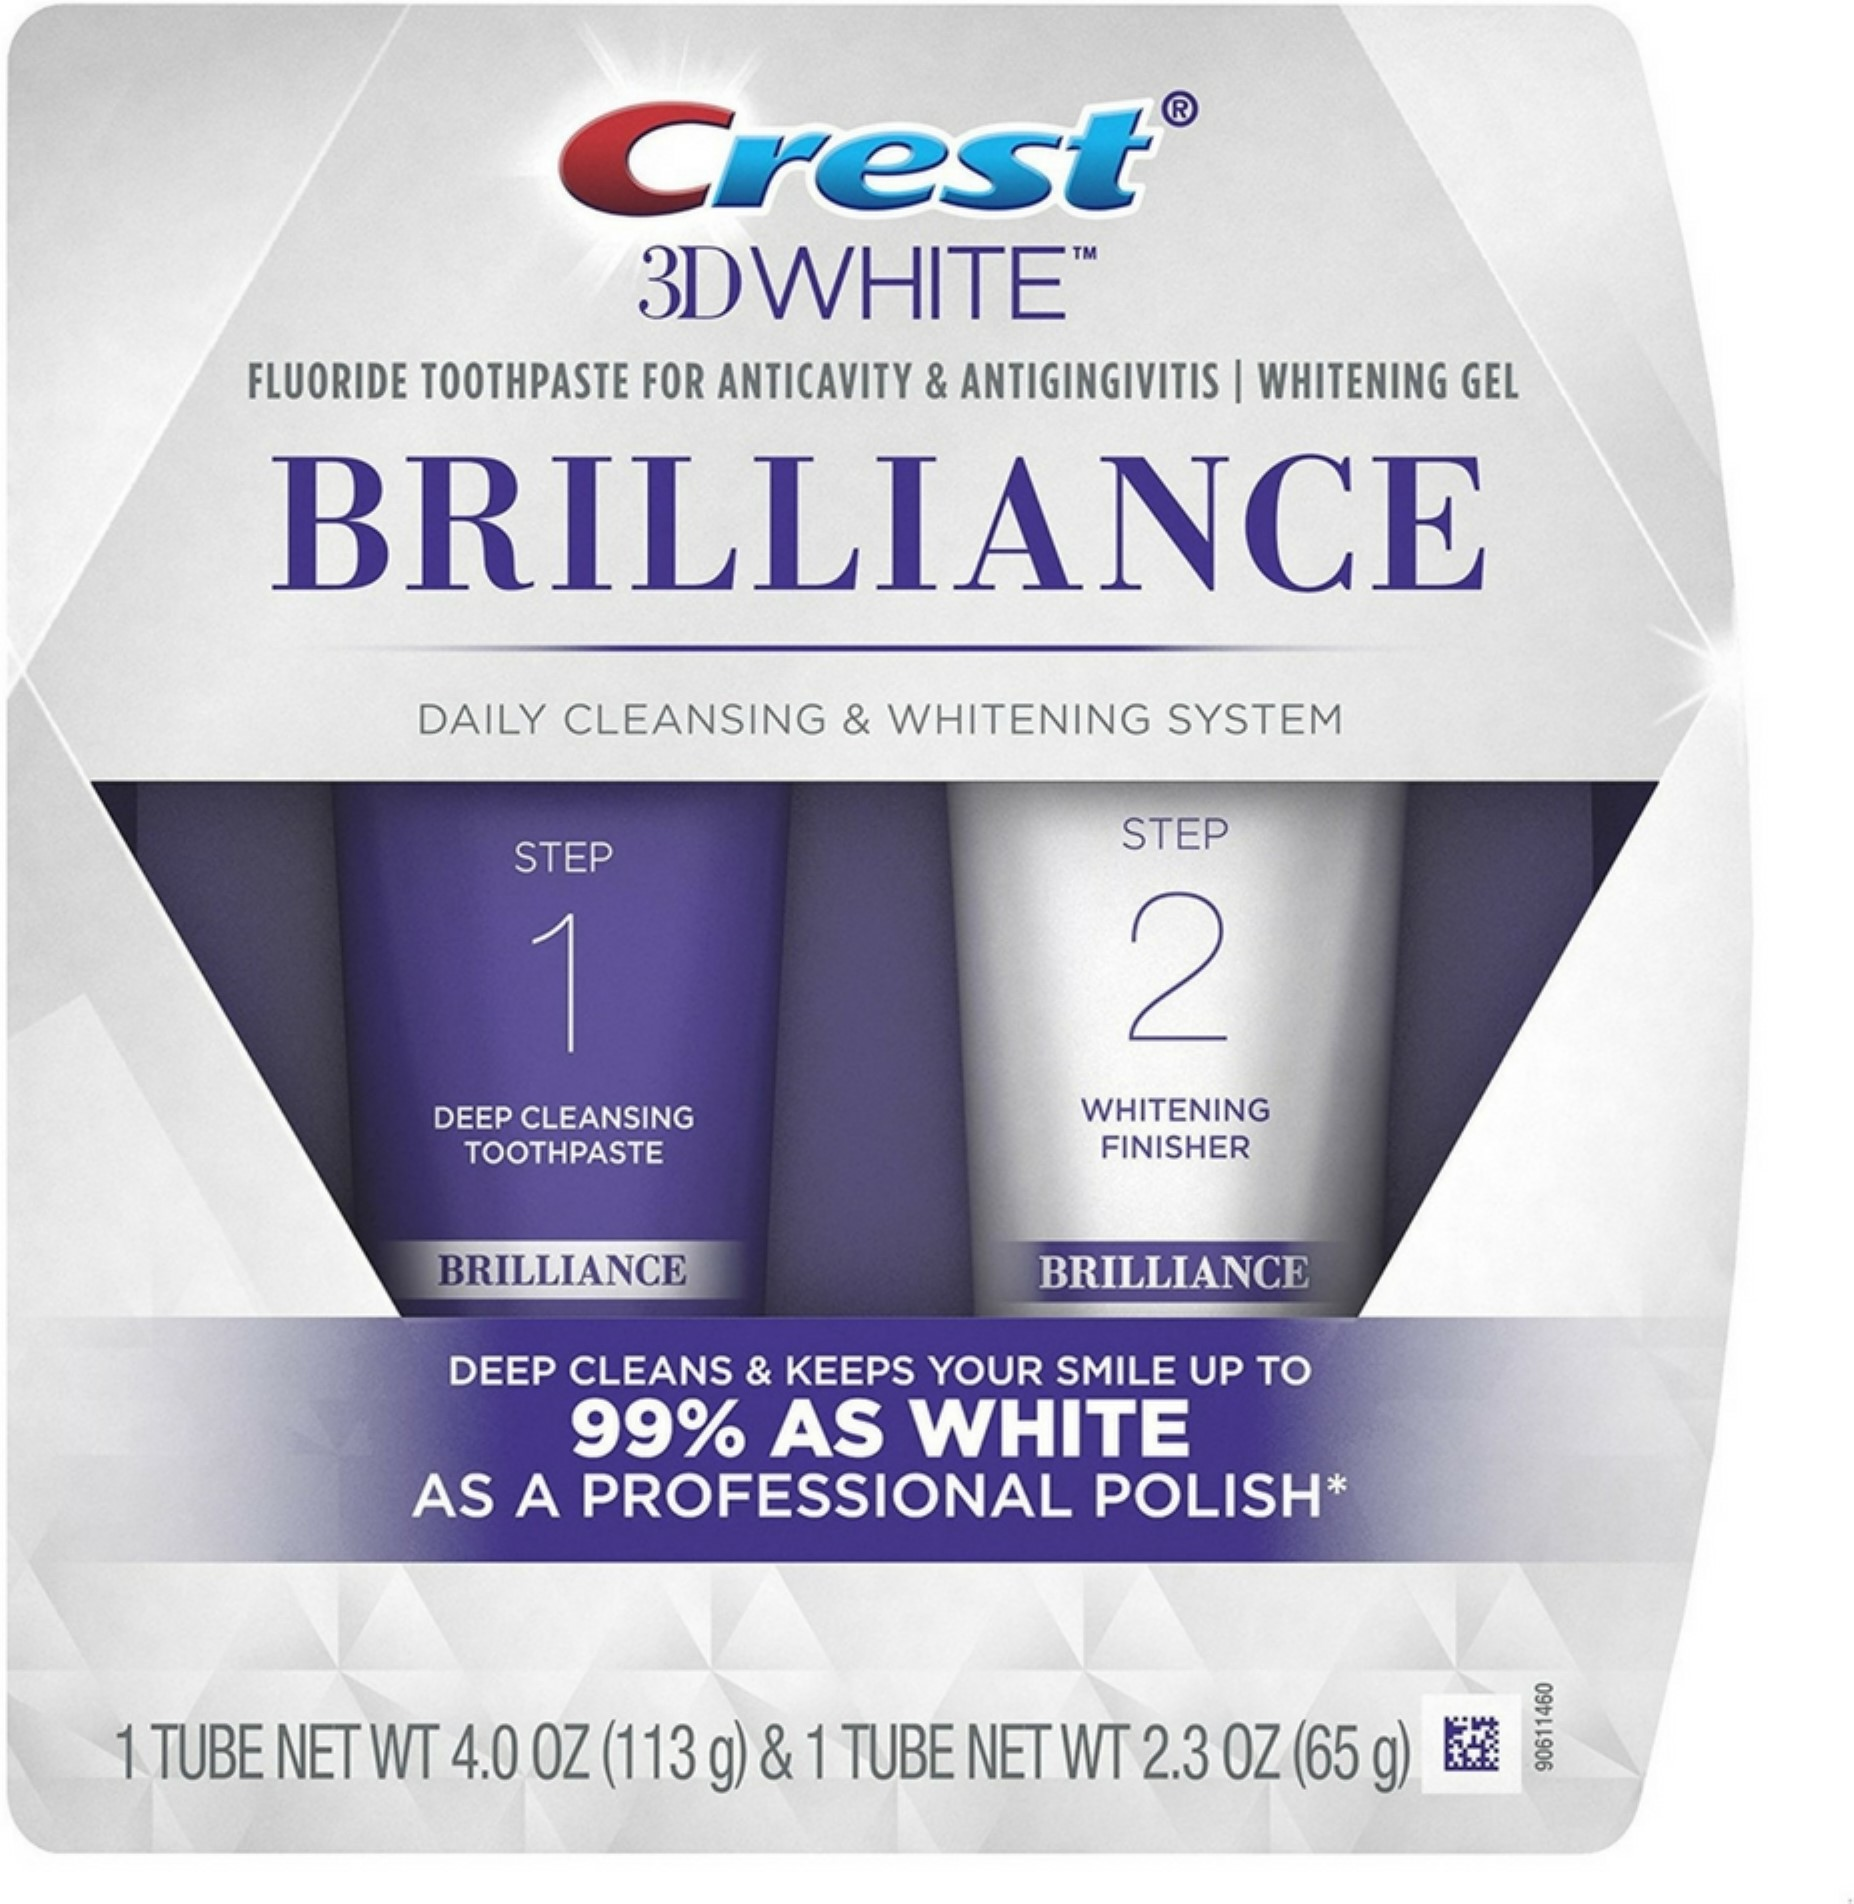 Crest 3D White Brilliance Daily Cleansing Toothpaste & Whitening Gel System 1 ea (Pack of 2)